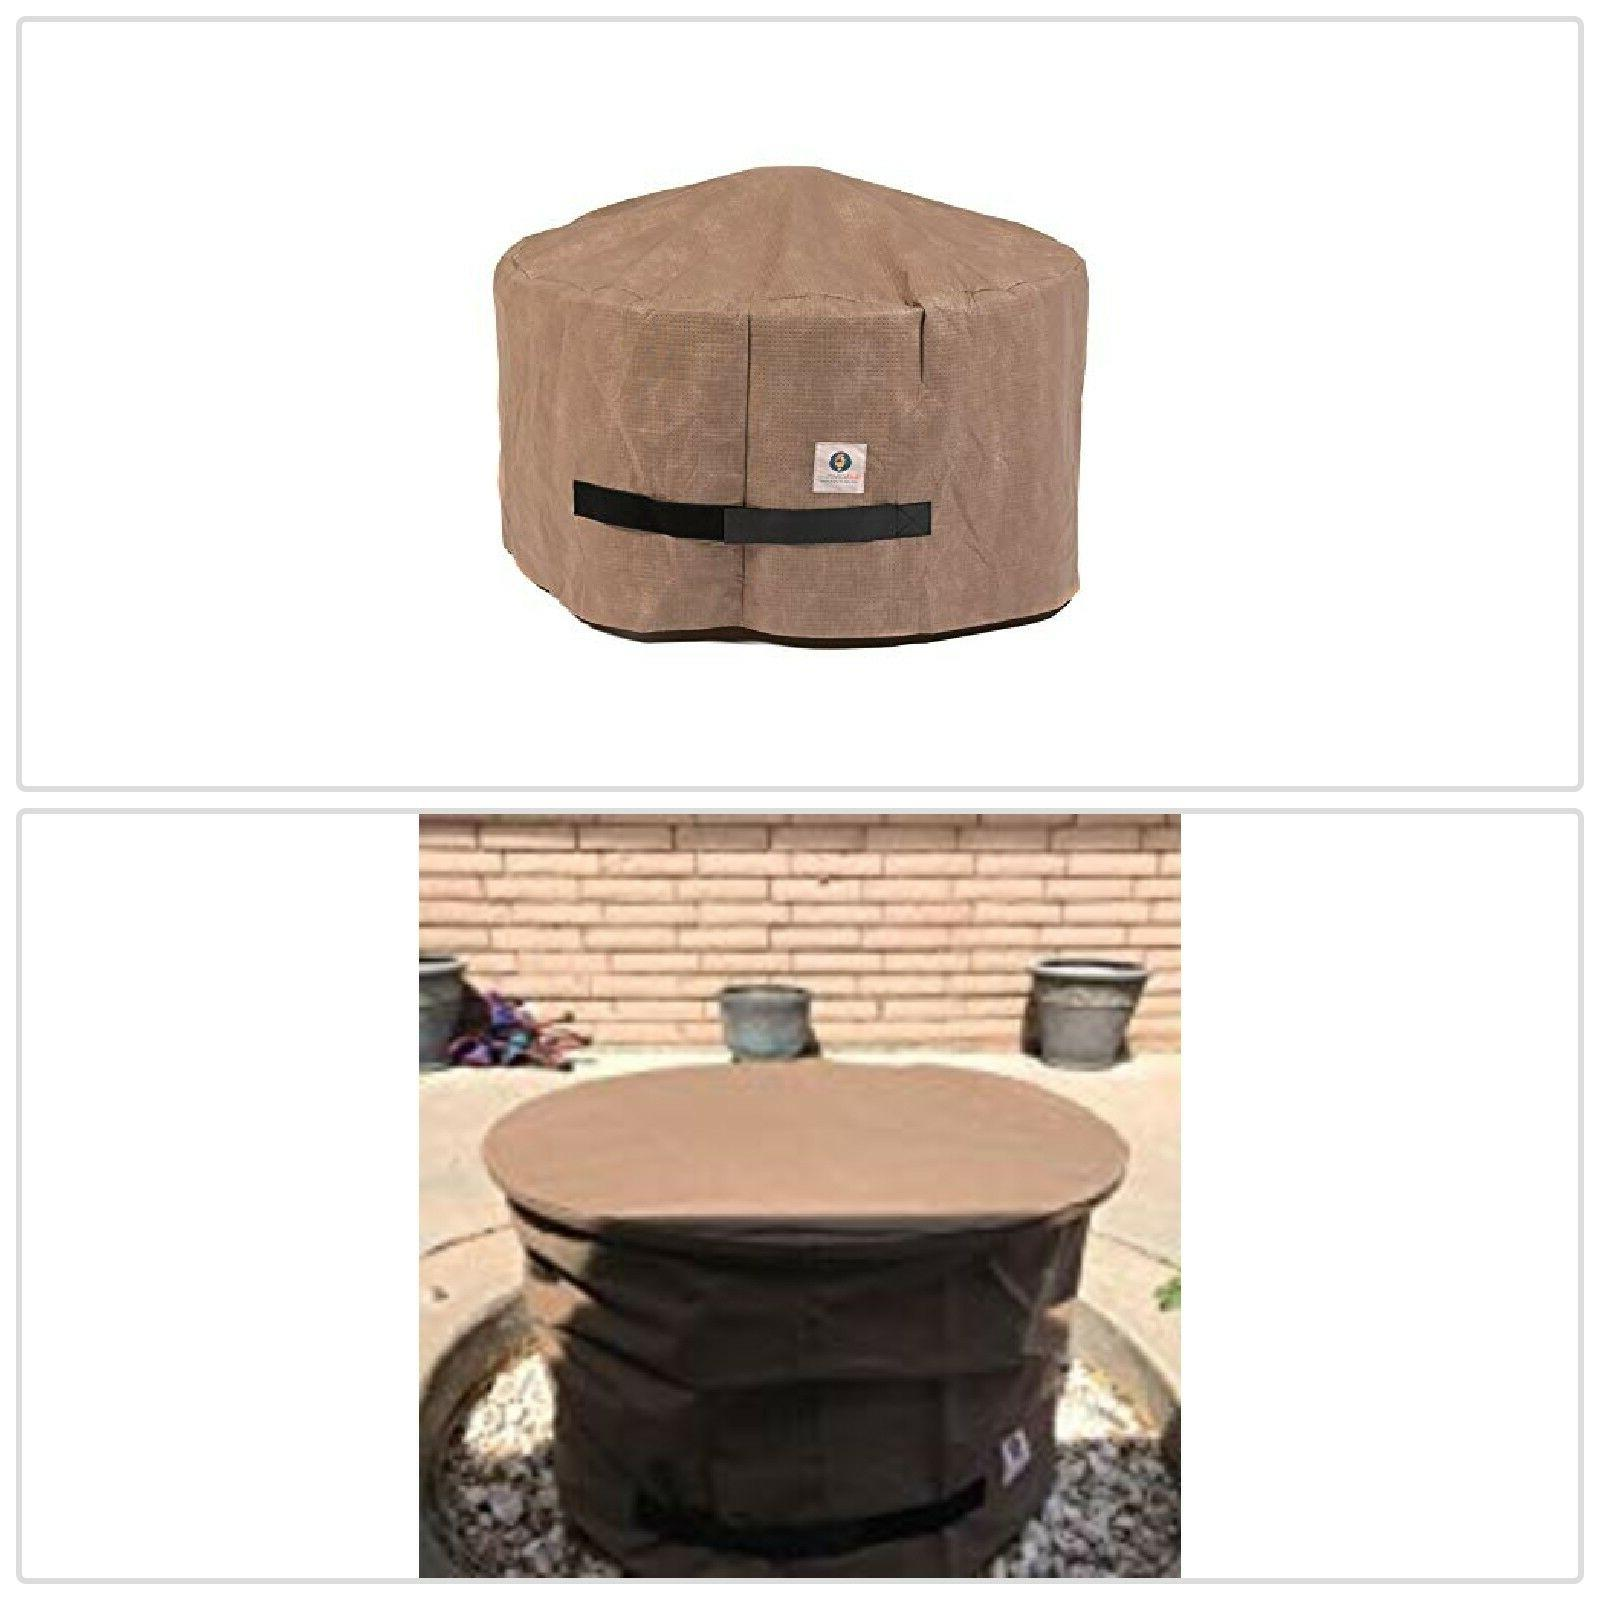 Elite Round Fire Pit Outdoors Resistant Fabric Material